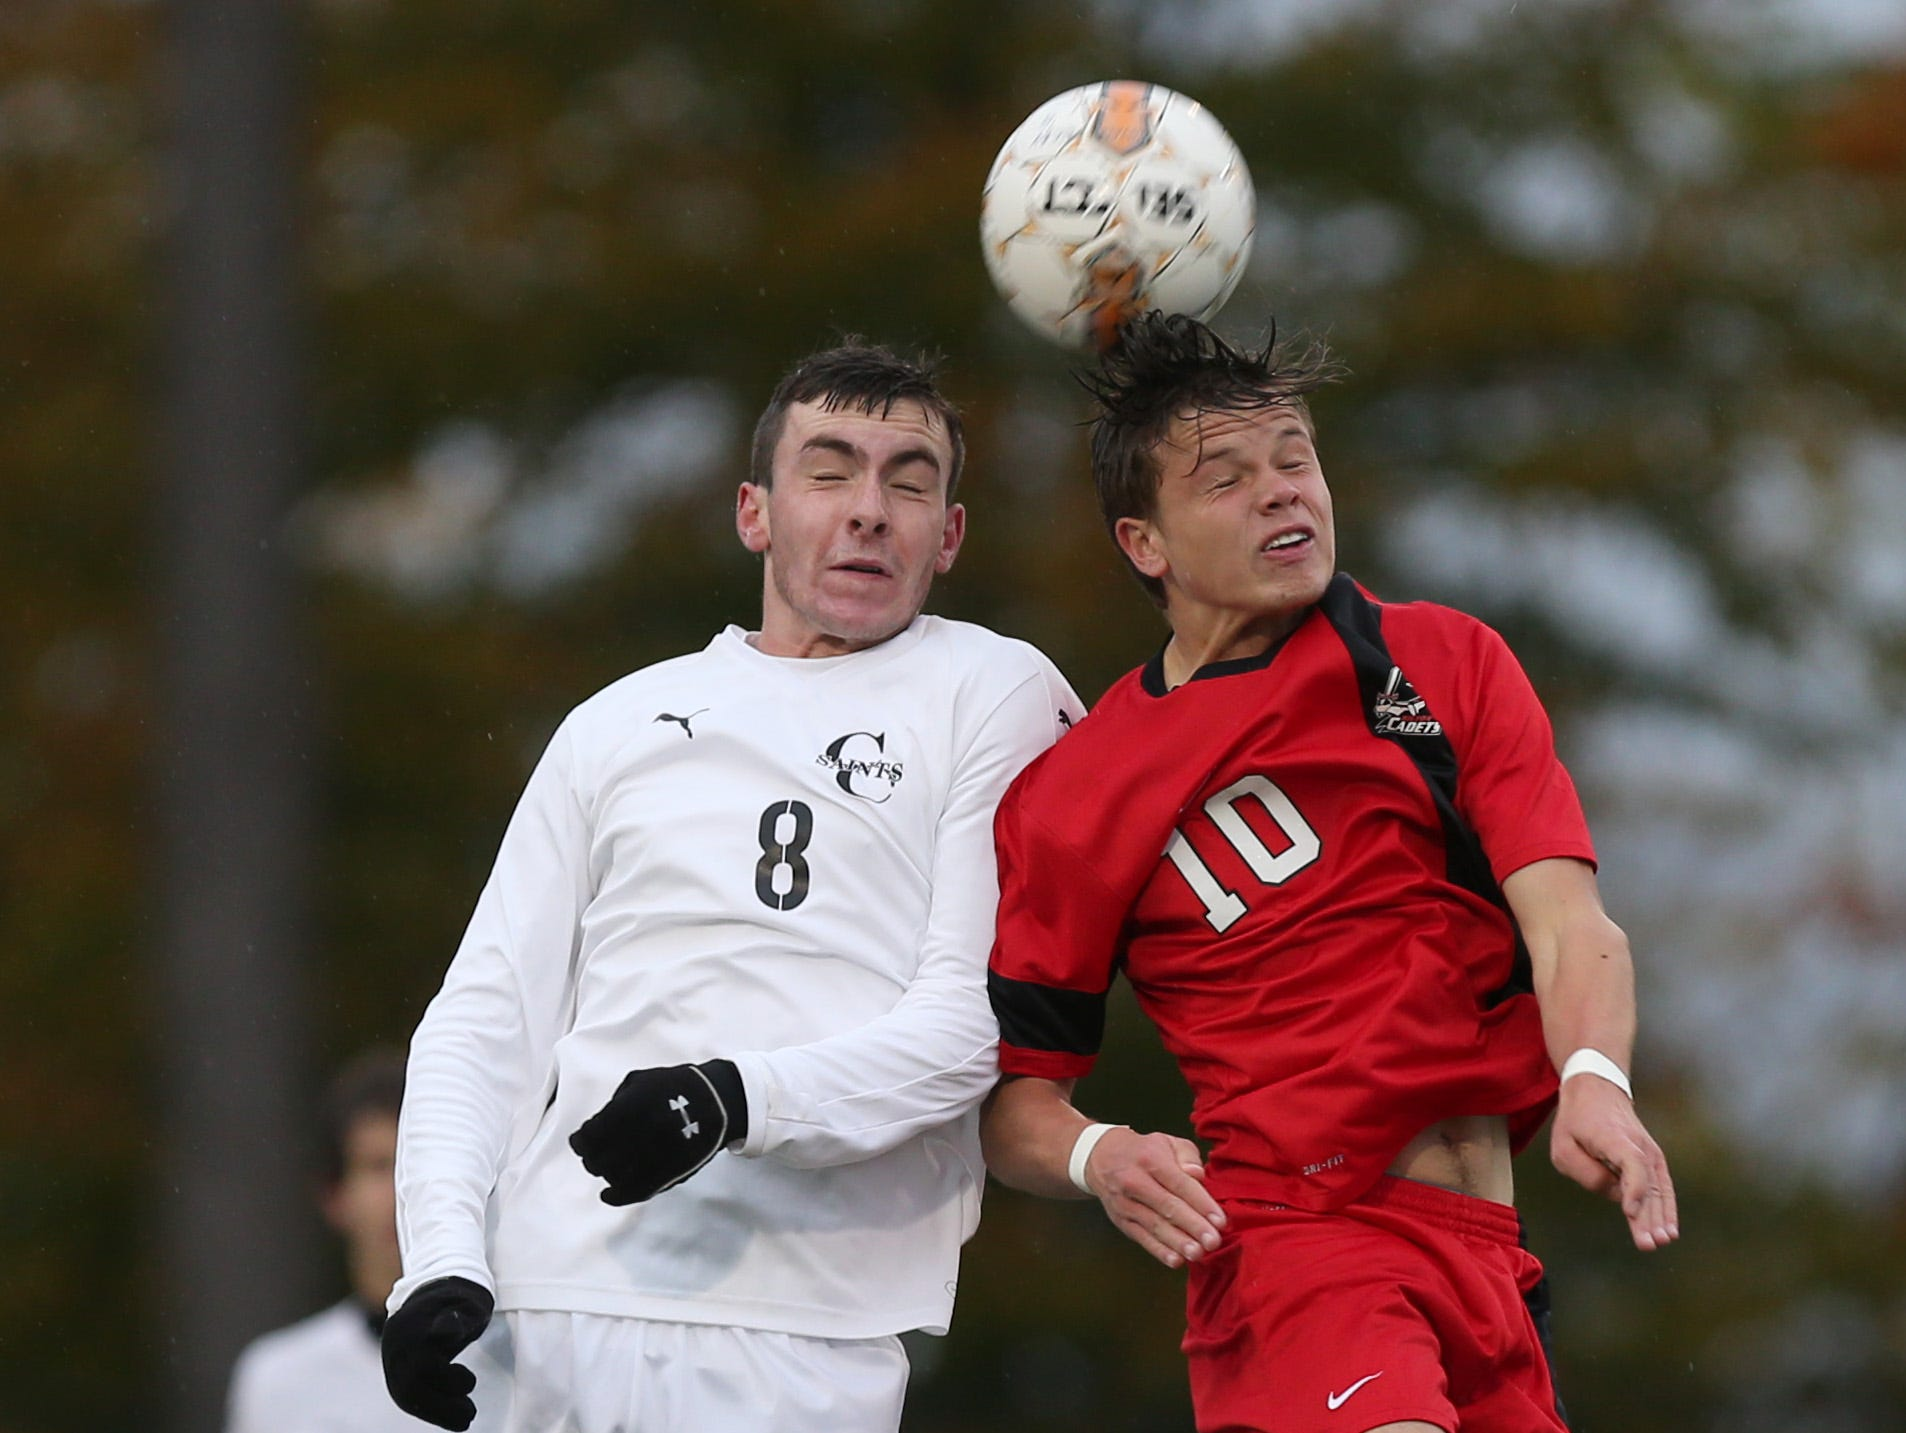 Churchville Chili's Austin Butts, left, and Hilton's Simon Garno battle for a header during their Class AA semifinal game at Spencerport Thursday, Oct. 29, 2015.